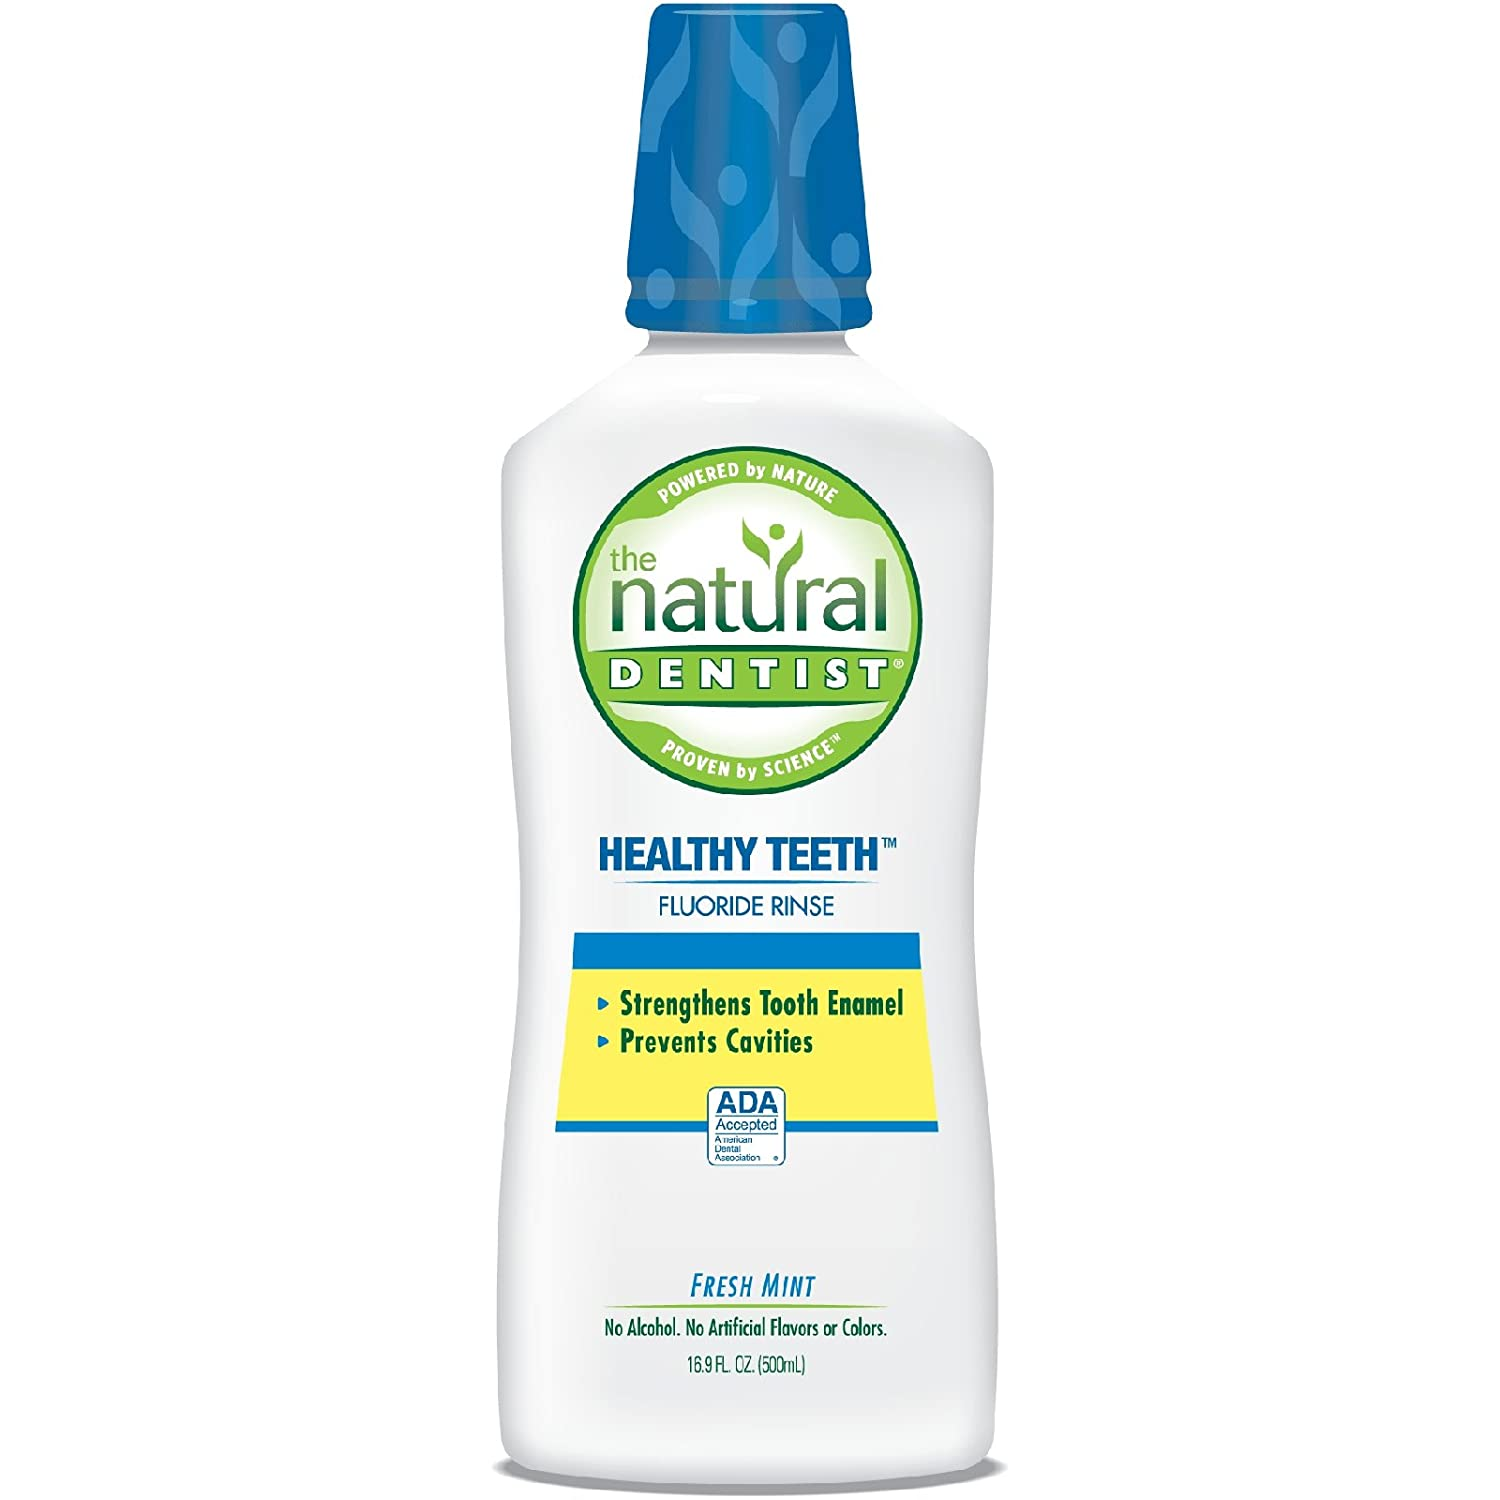 The Natural Dentist Healthy Teeth Anti-Cavity Fluoride Rinse Fresh Mint 16.90 oz (Pack of 4) : Anesthetic Oral Rinses Or Antiseptic Oral Rinses : Beauty